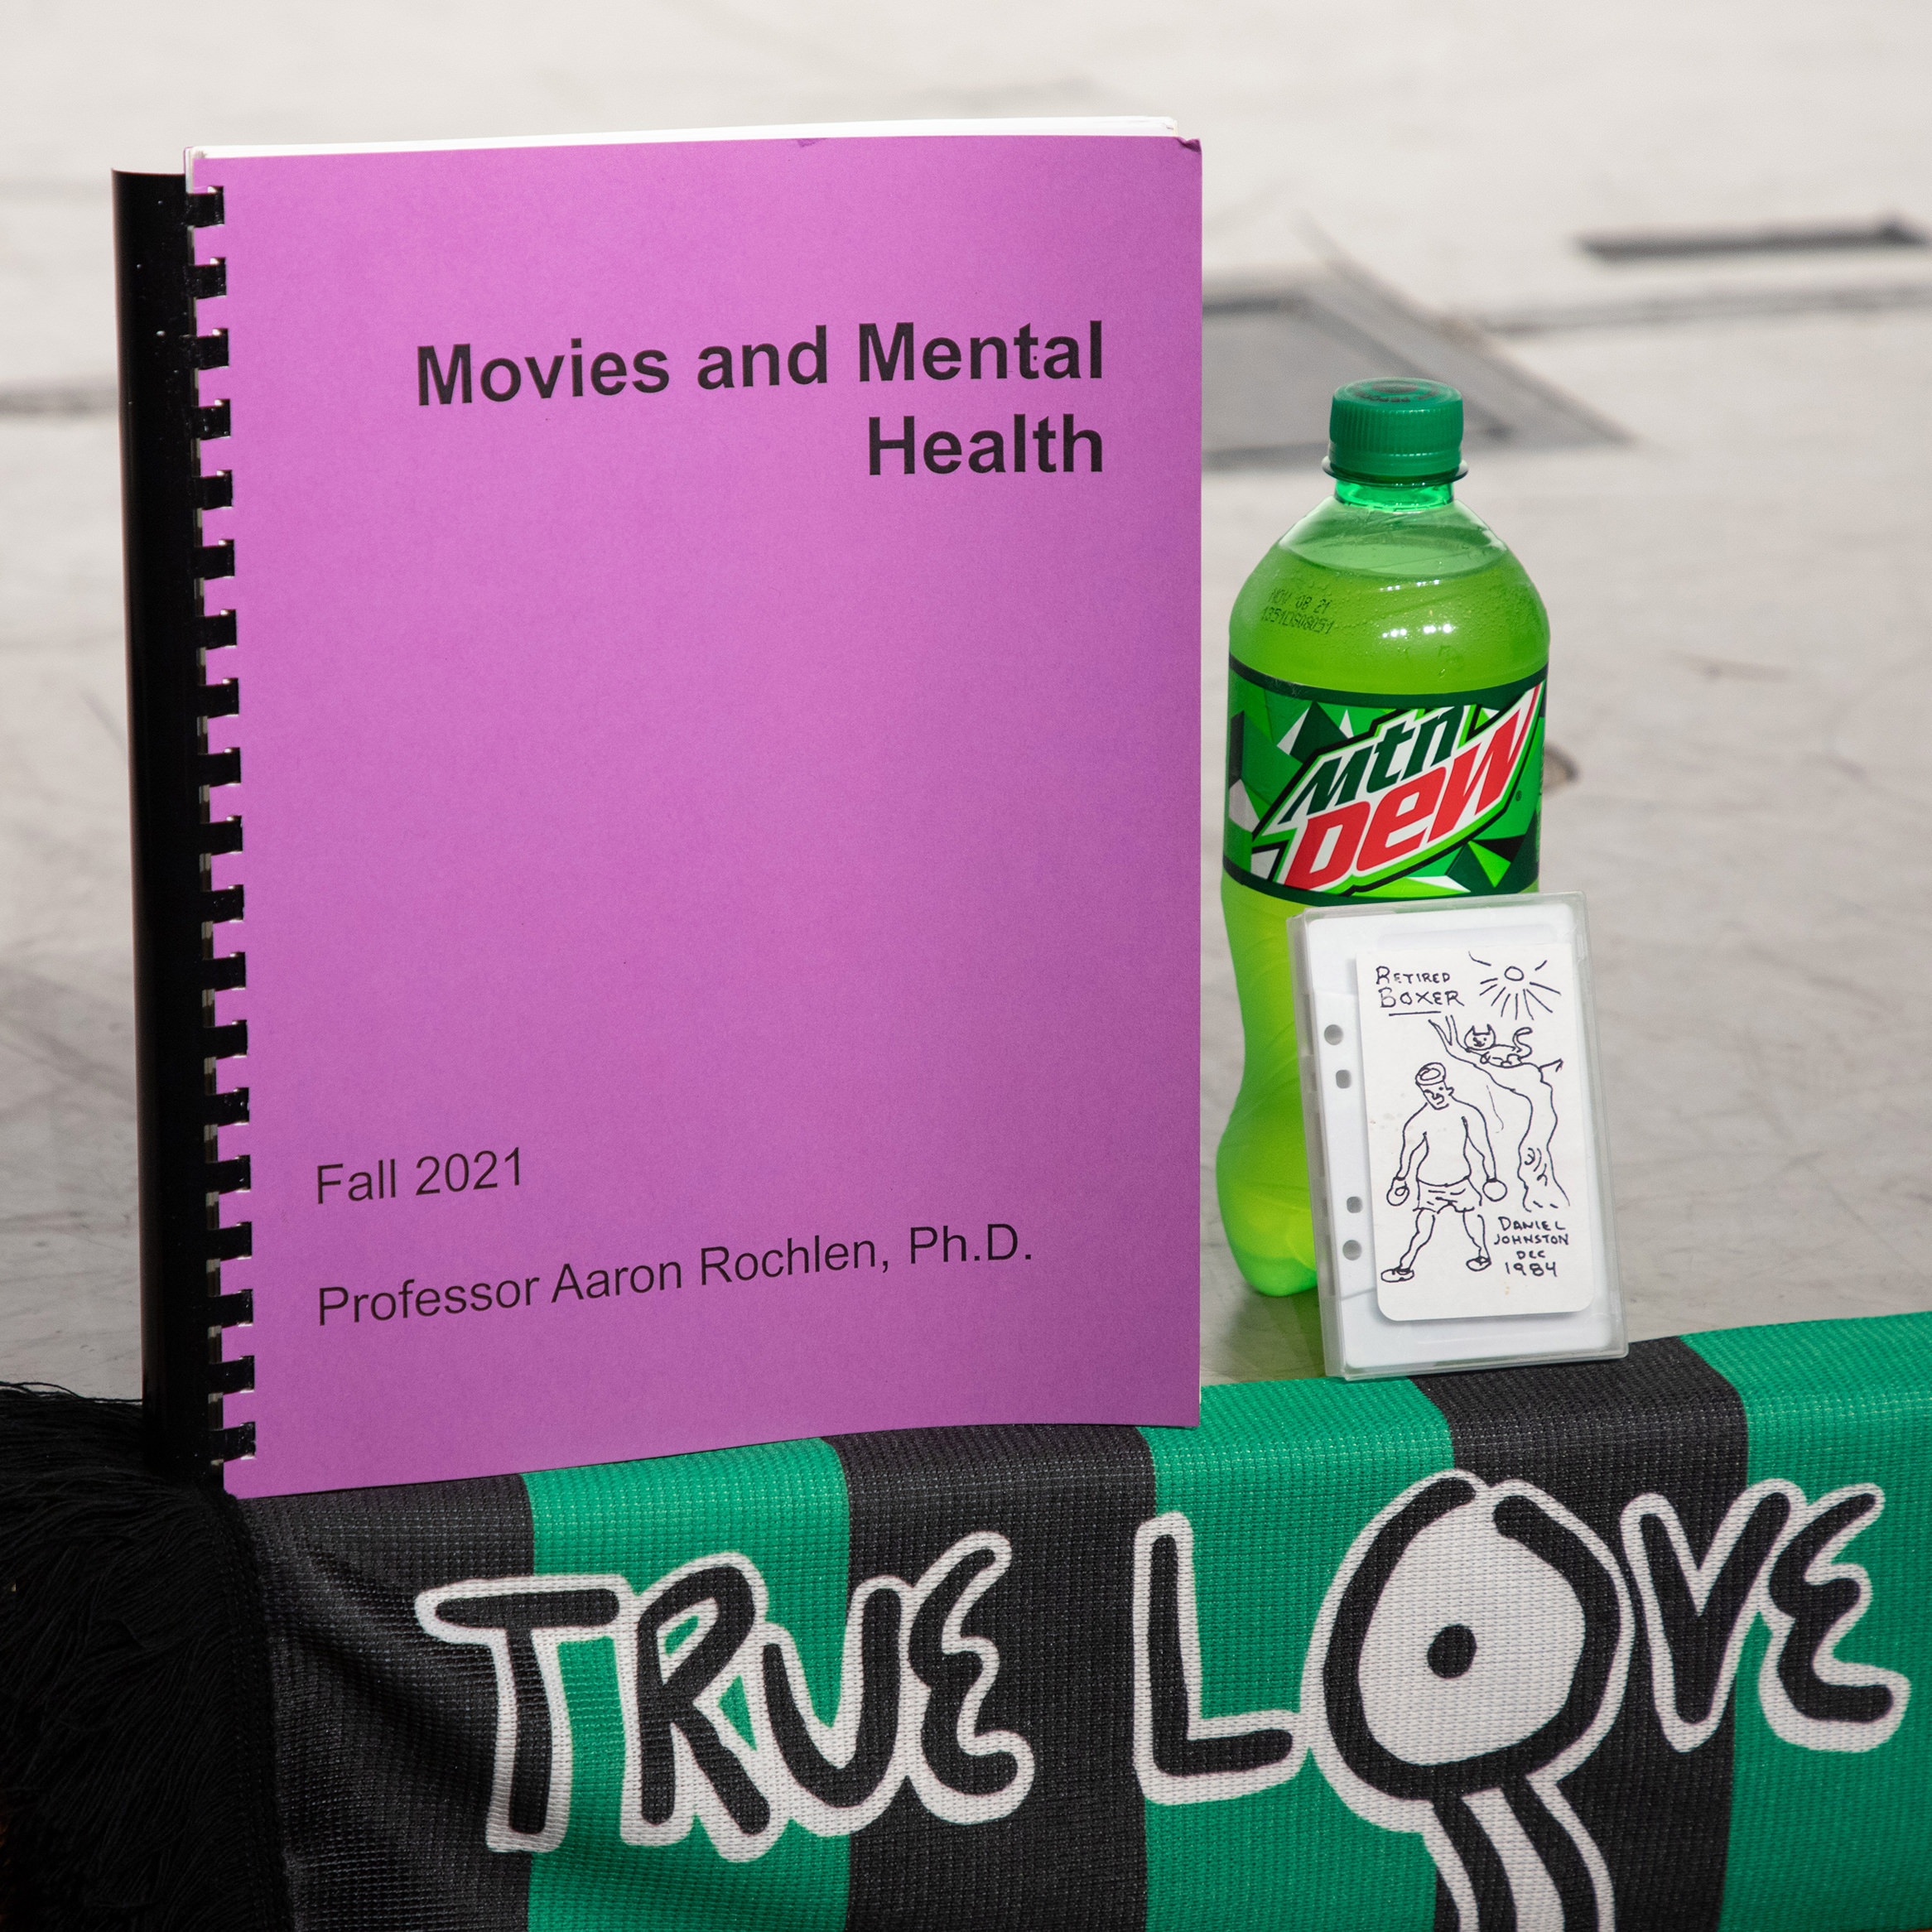 The course packet for Movies and Mental Health with Daniel Johnston memoribilia